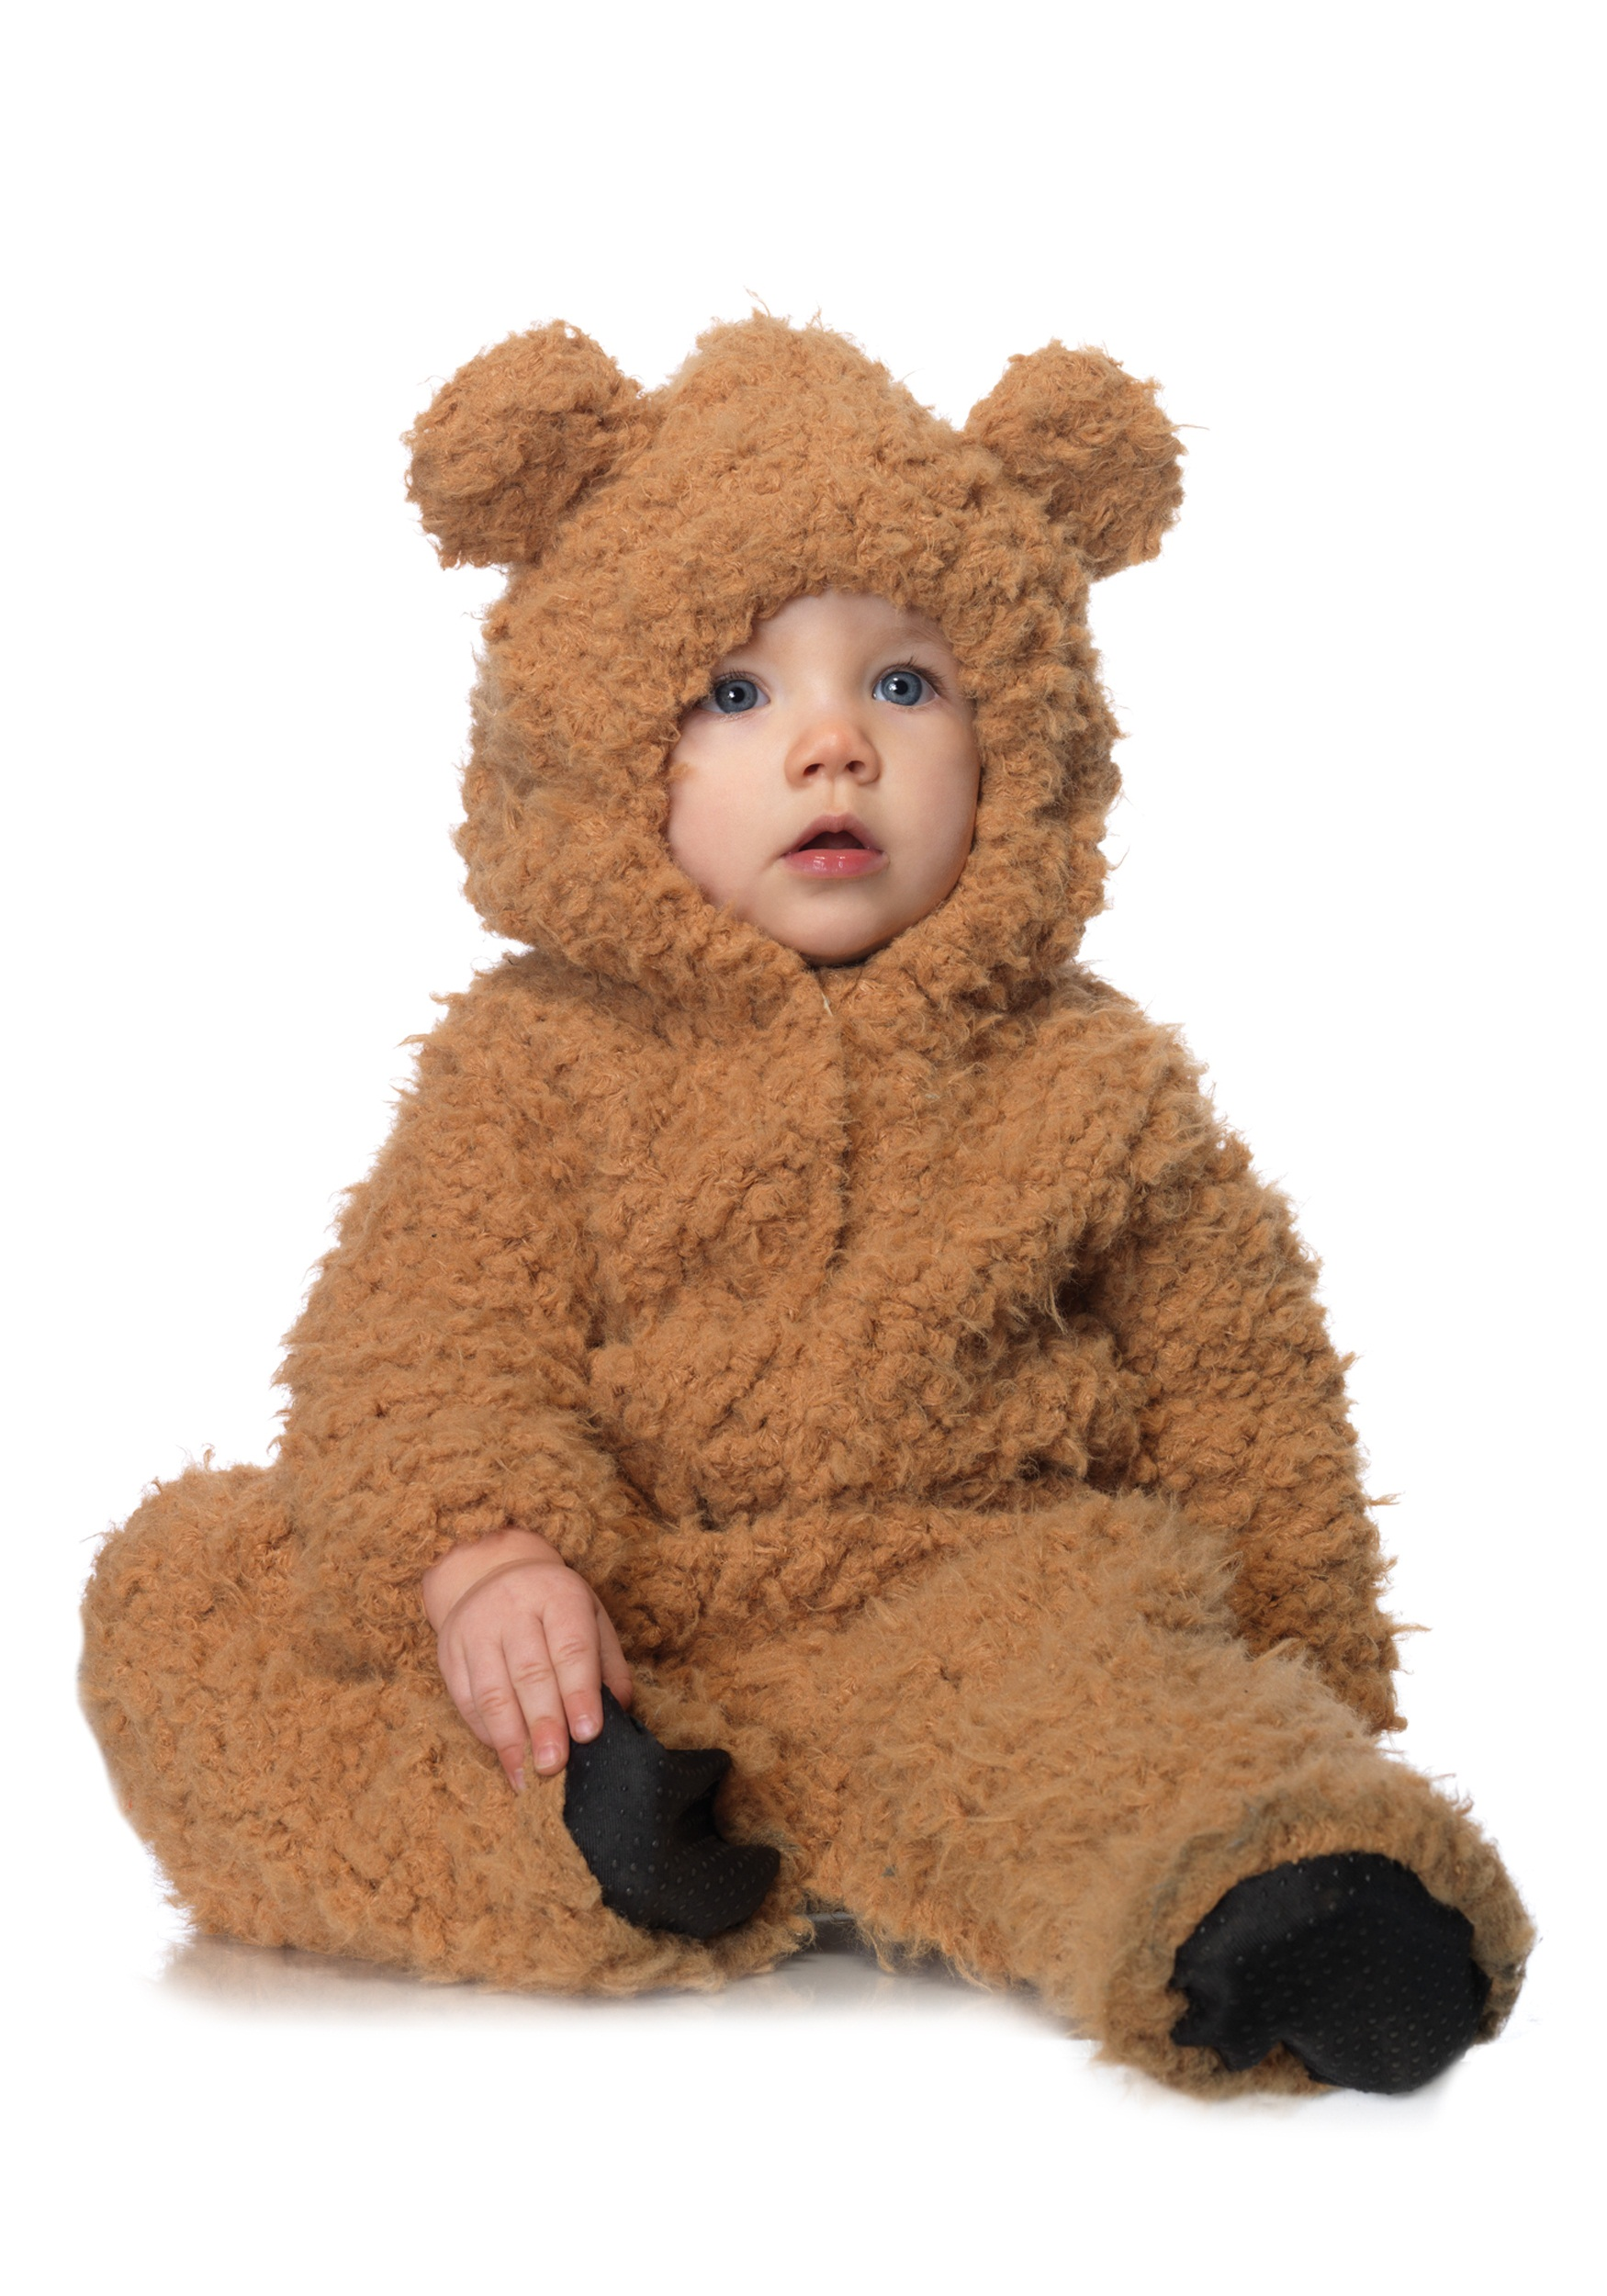 Baby Bear Costume  sc 1 st  Halloween Costumes & Baby Bear Costume - Halloween Costumes